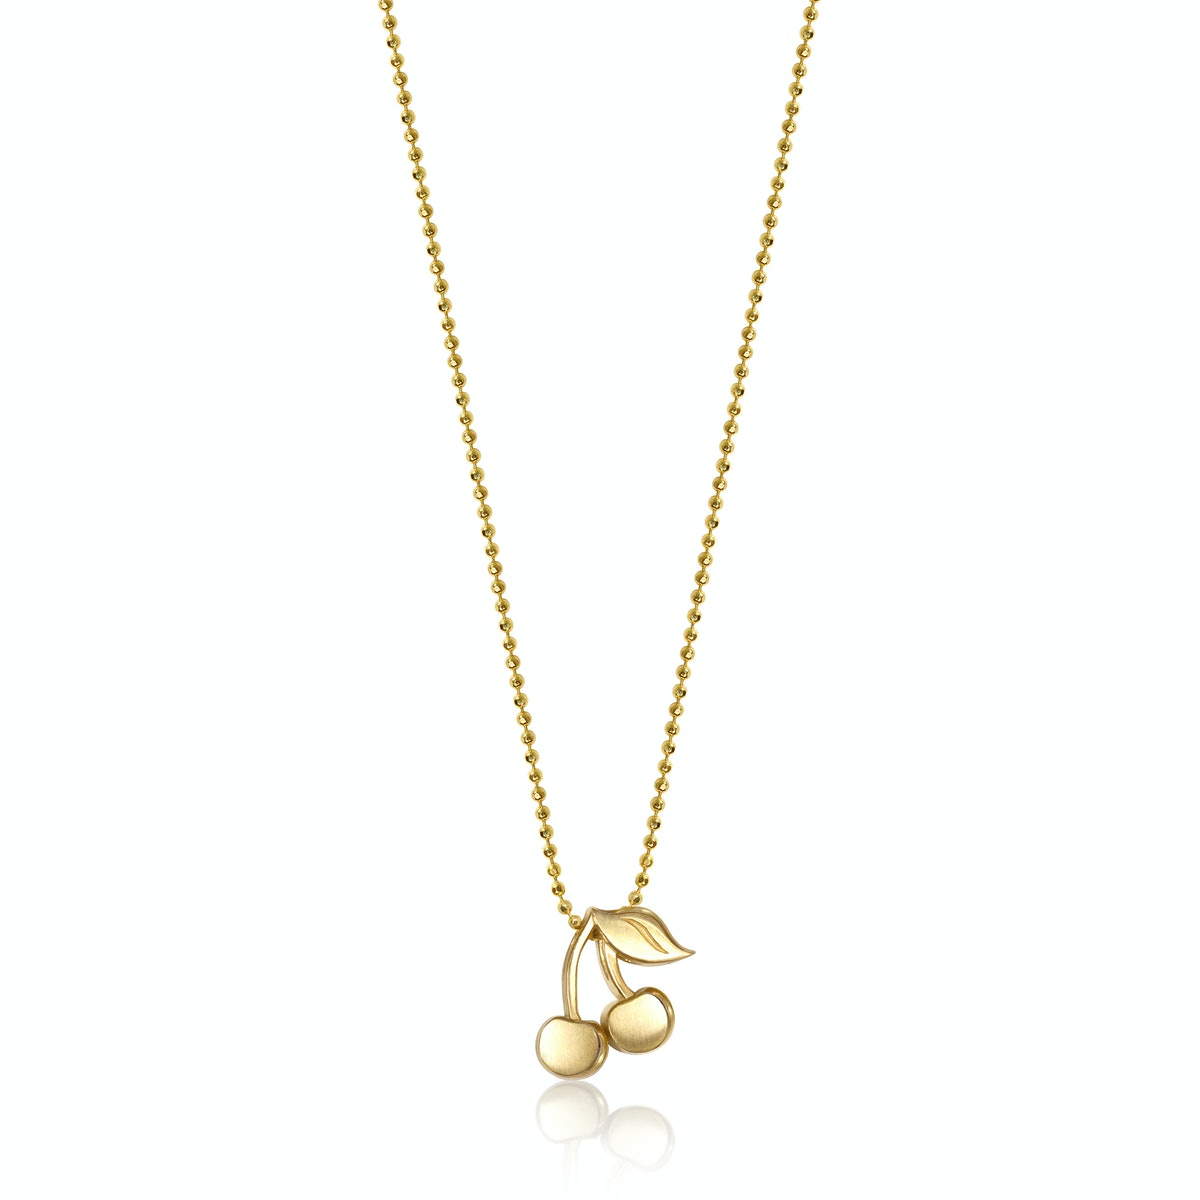 Alex Woo 14k yellow gold necklace